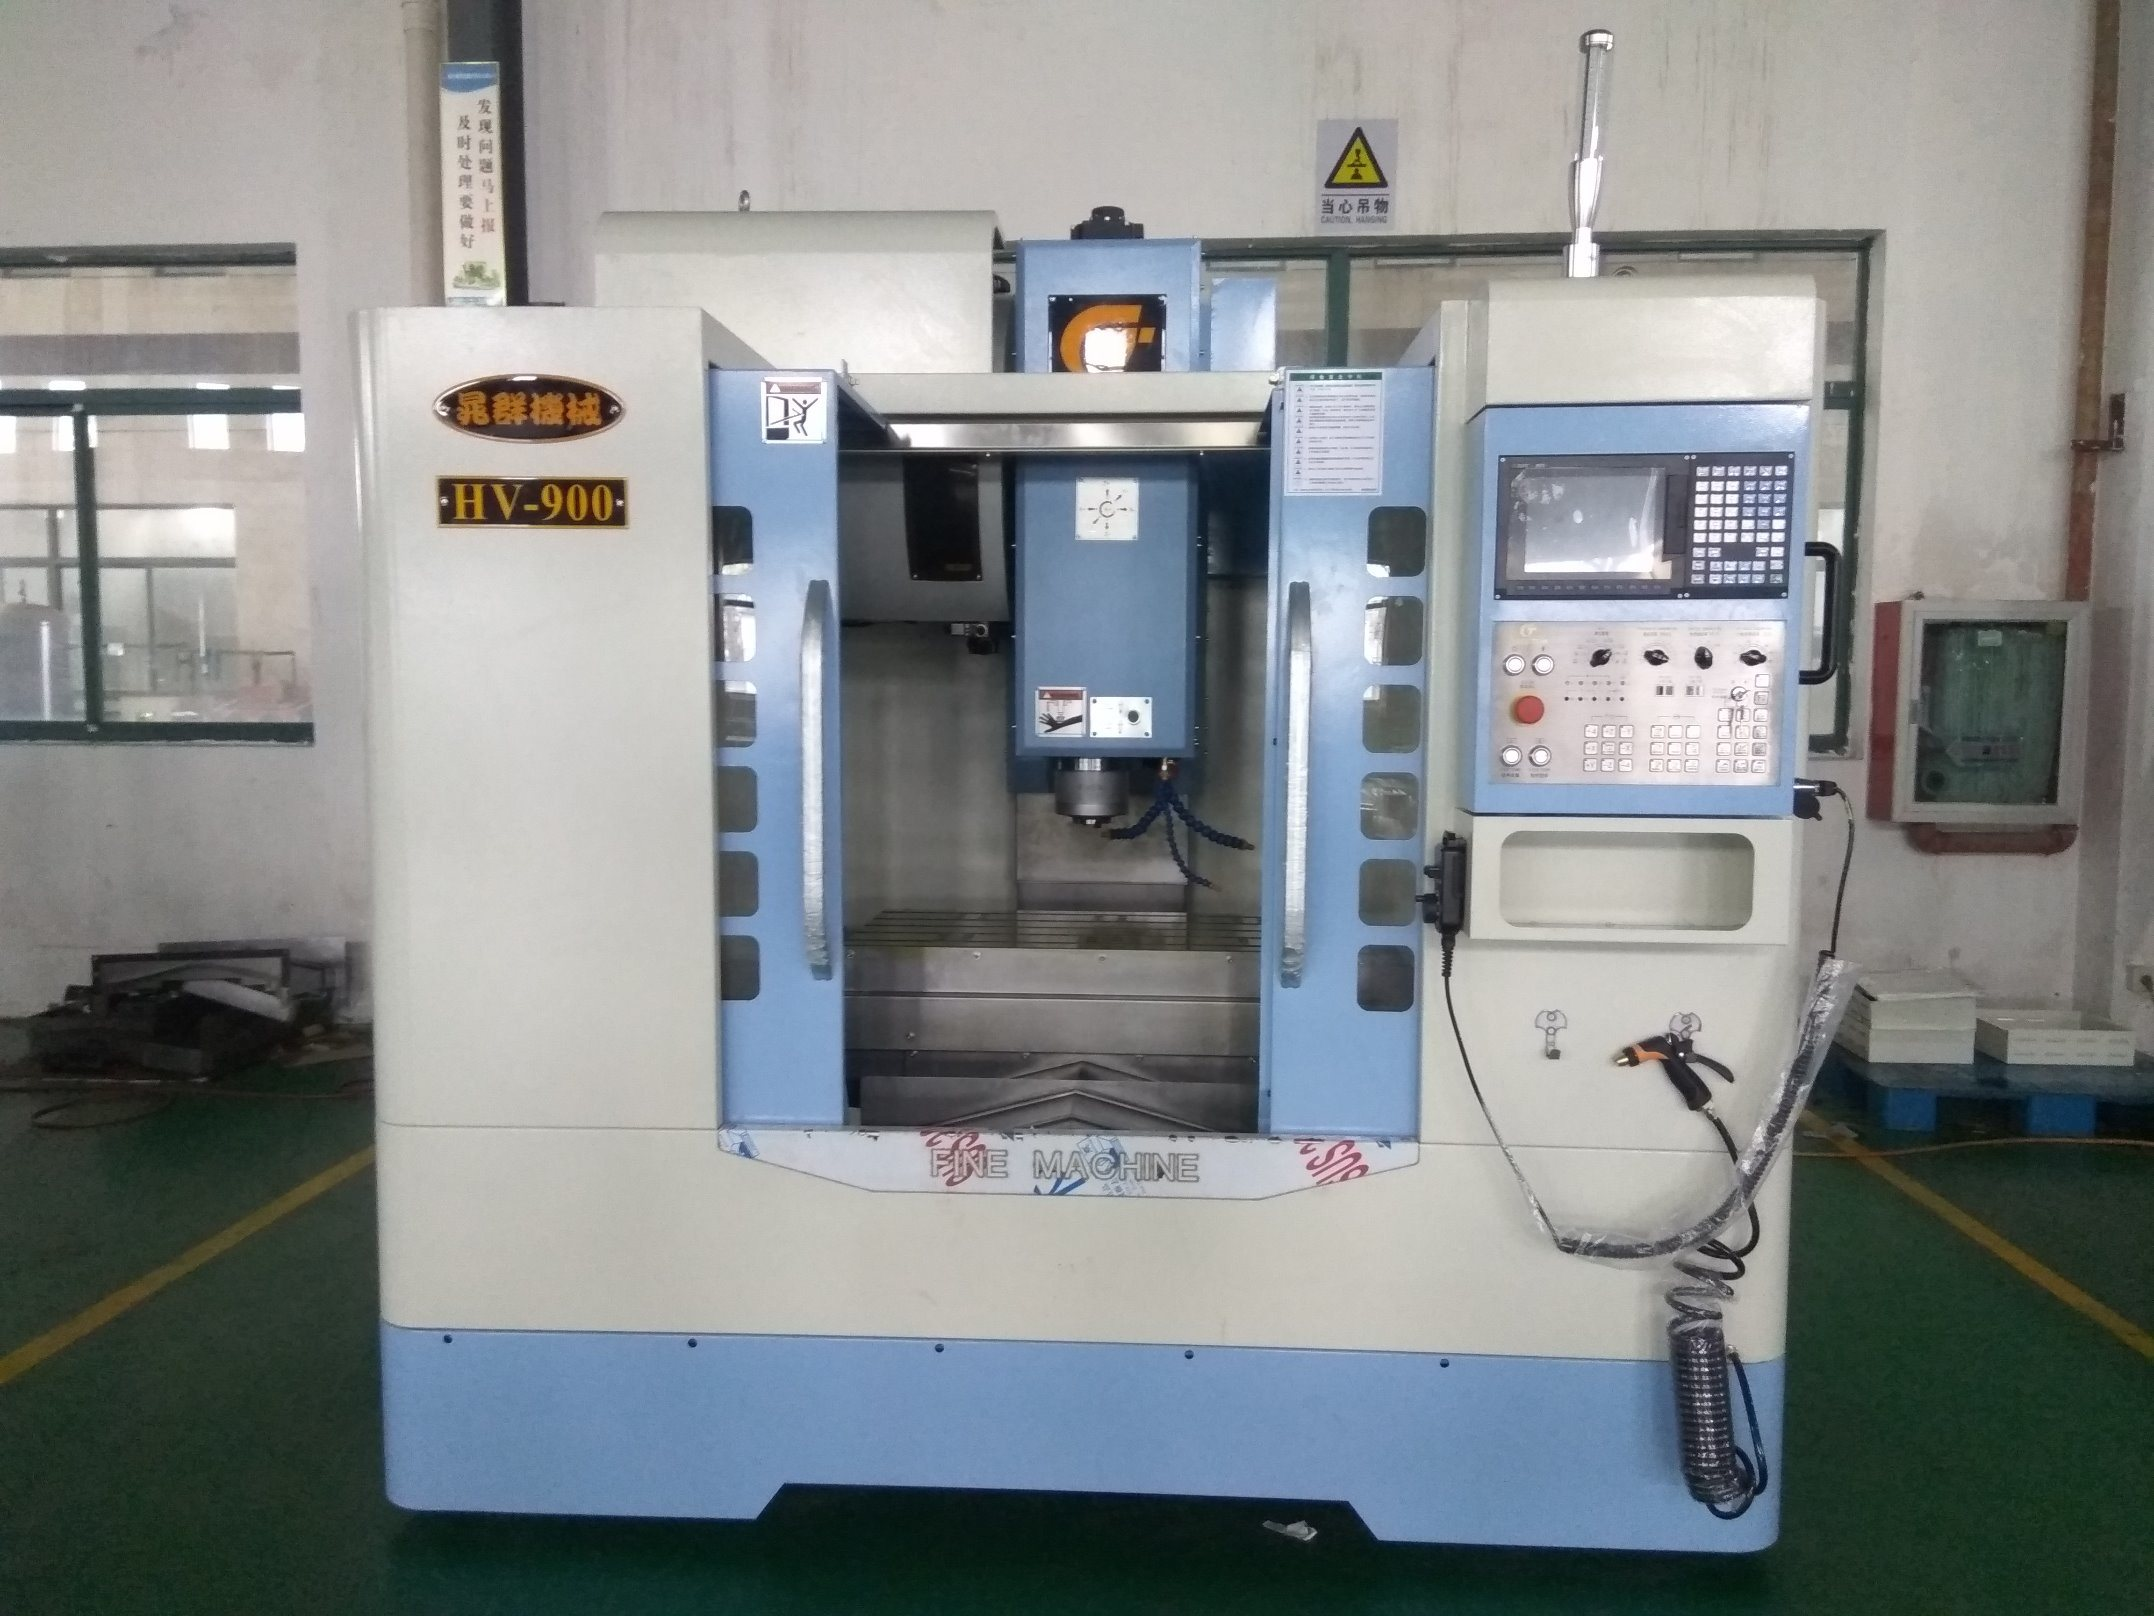 Hot Sale Univeral Vertical CNC Milling Machine with Strict Quality Control (HV-900)